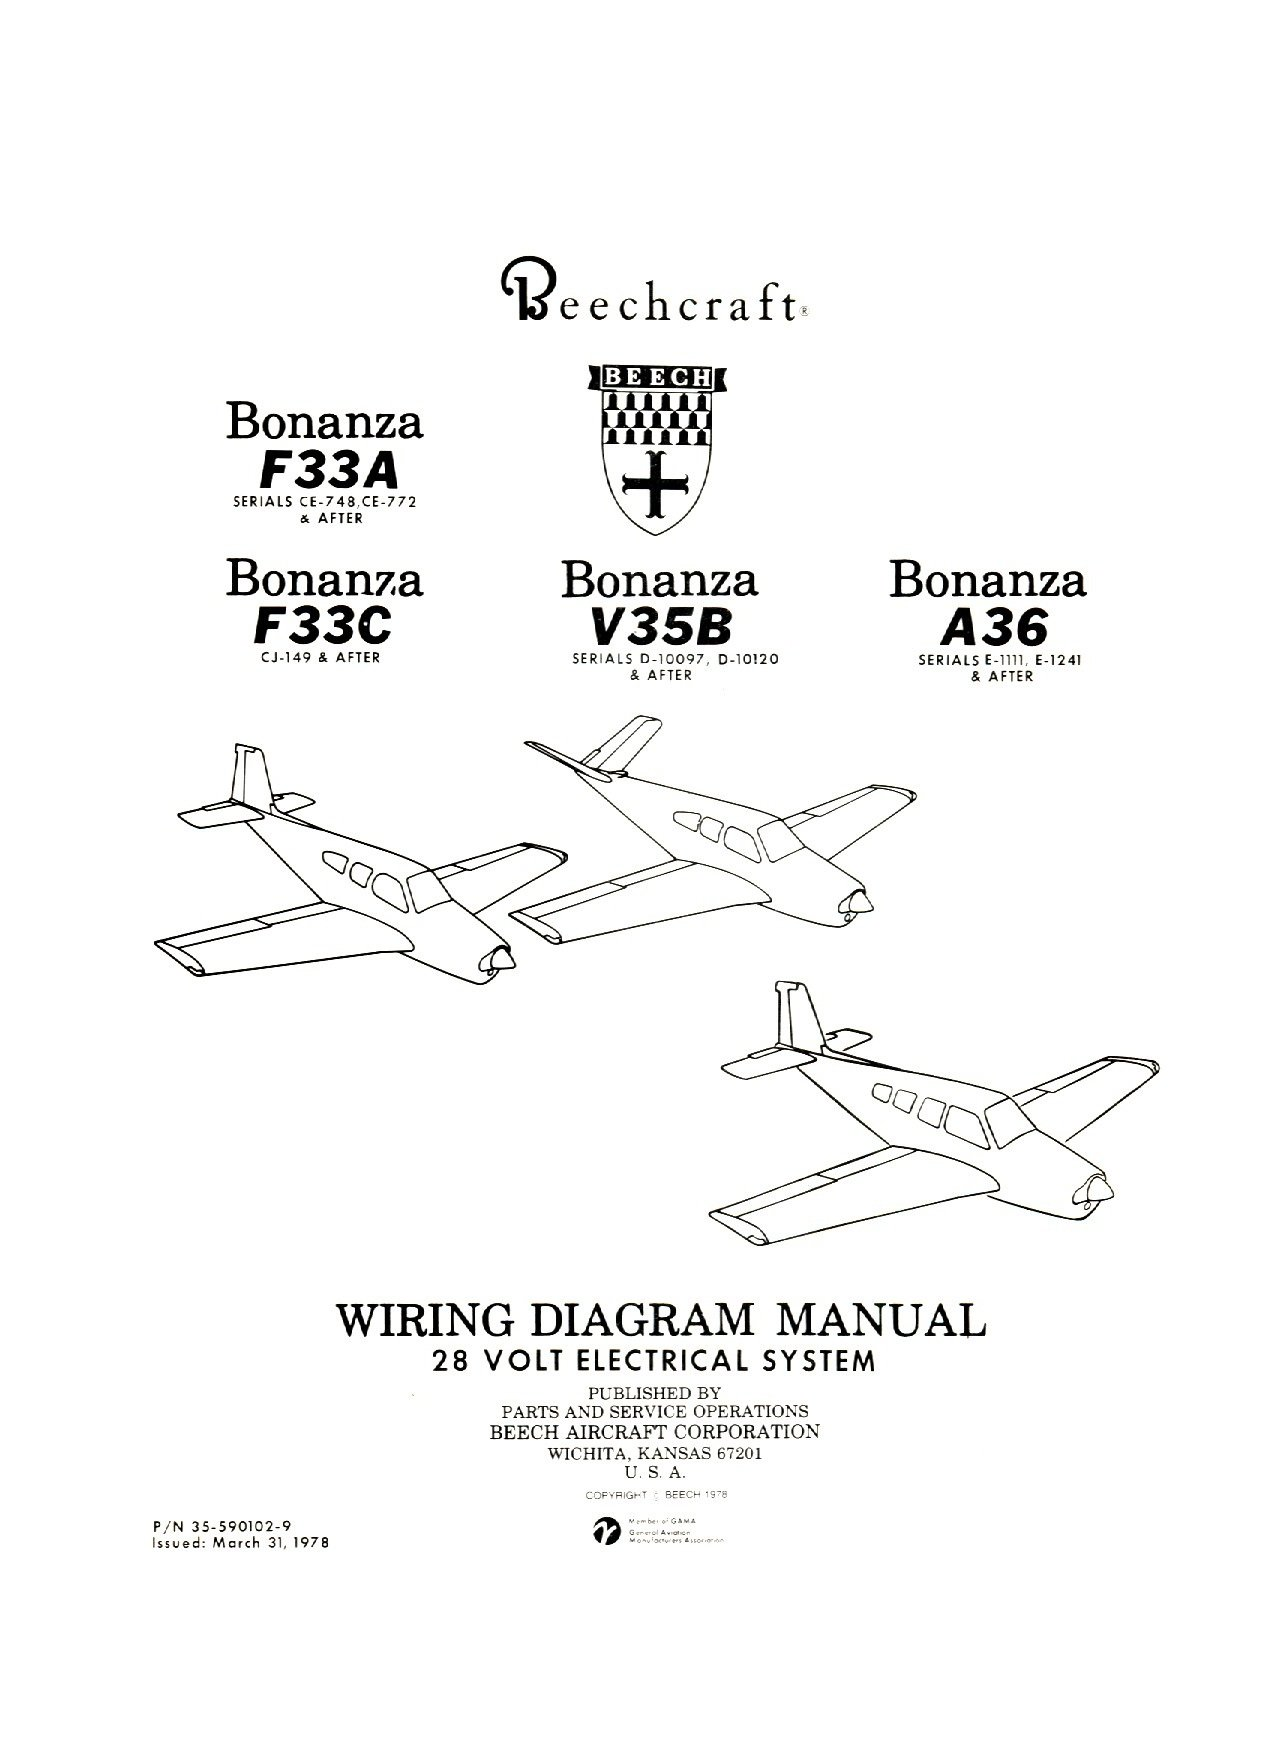 Beechcraft Bonanza F33A F33C V35B A36 Wiring Diagram 28V Electrical System  [Loose Leaf]: Beechcraft: Amazon.com: Books